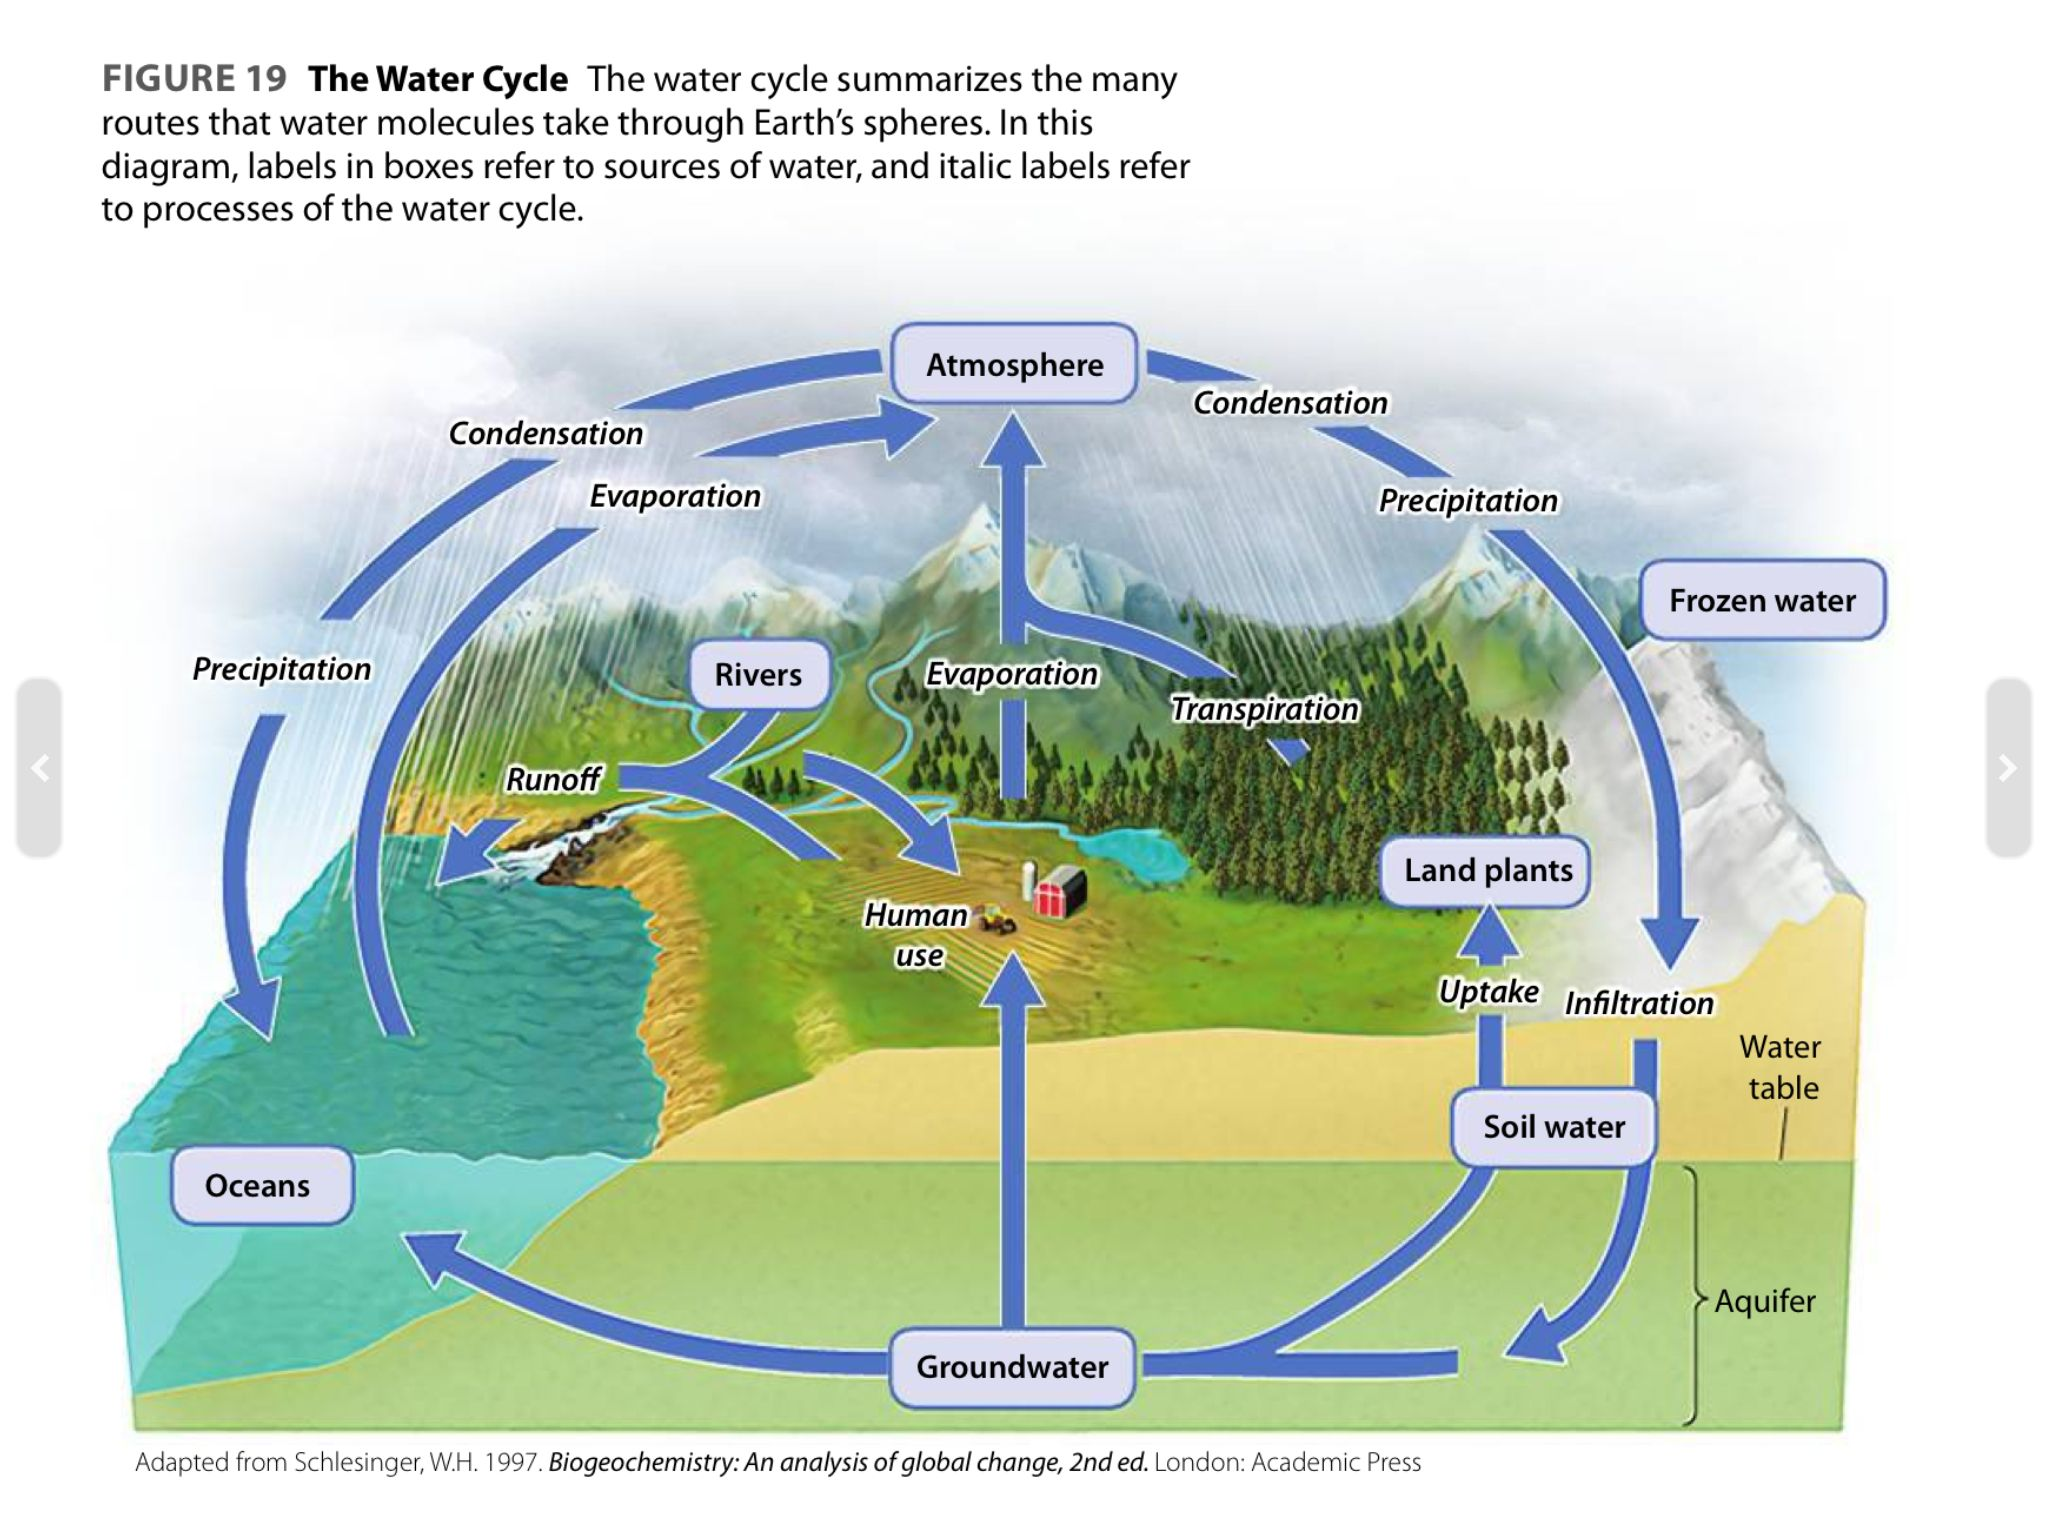 Water Cycle Image